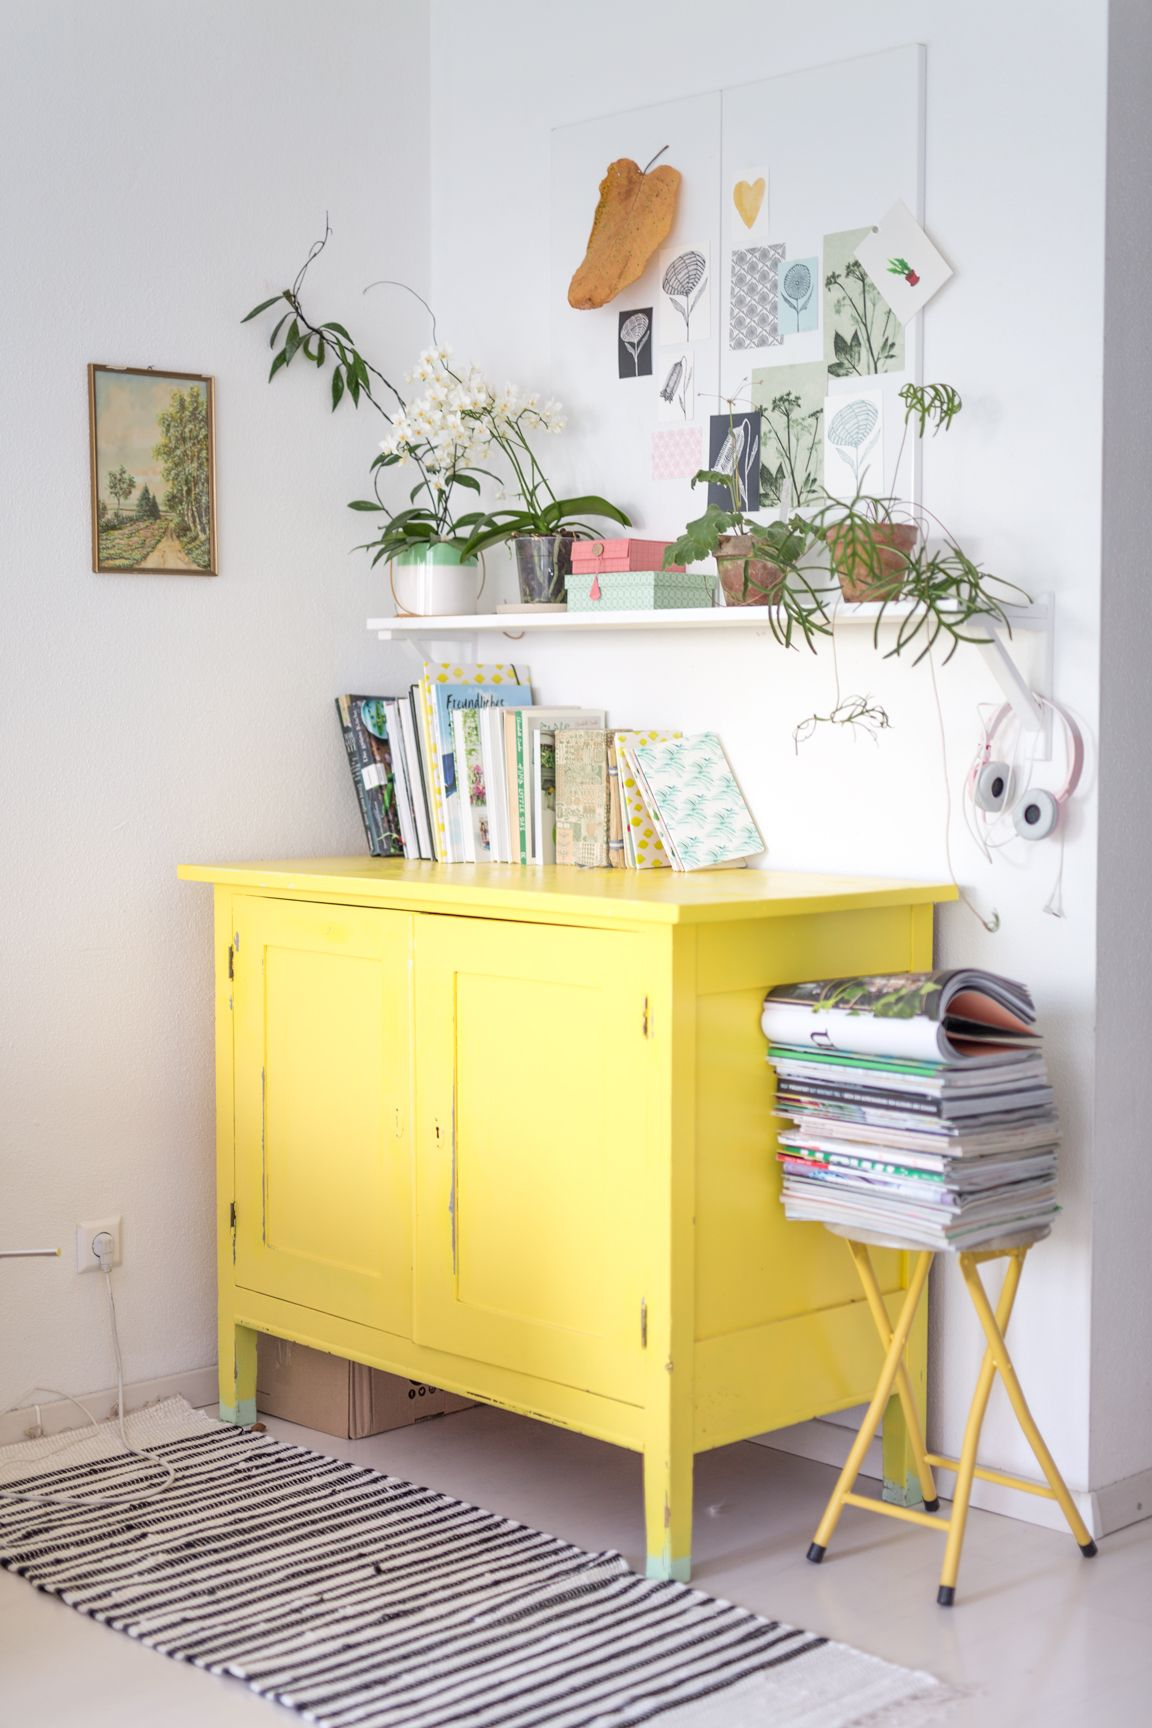 Meuble Jaune Meuble Jaune Déco Maison Pinterest Home Decor Decor Et Home